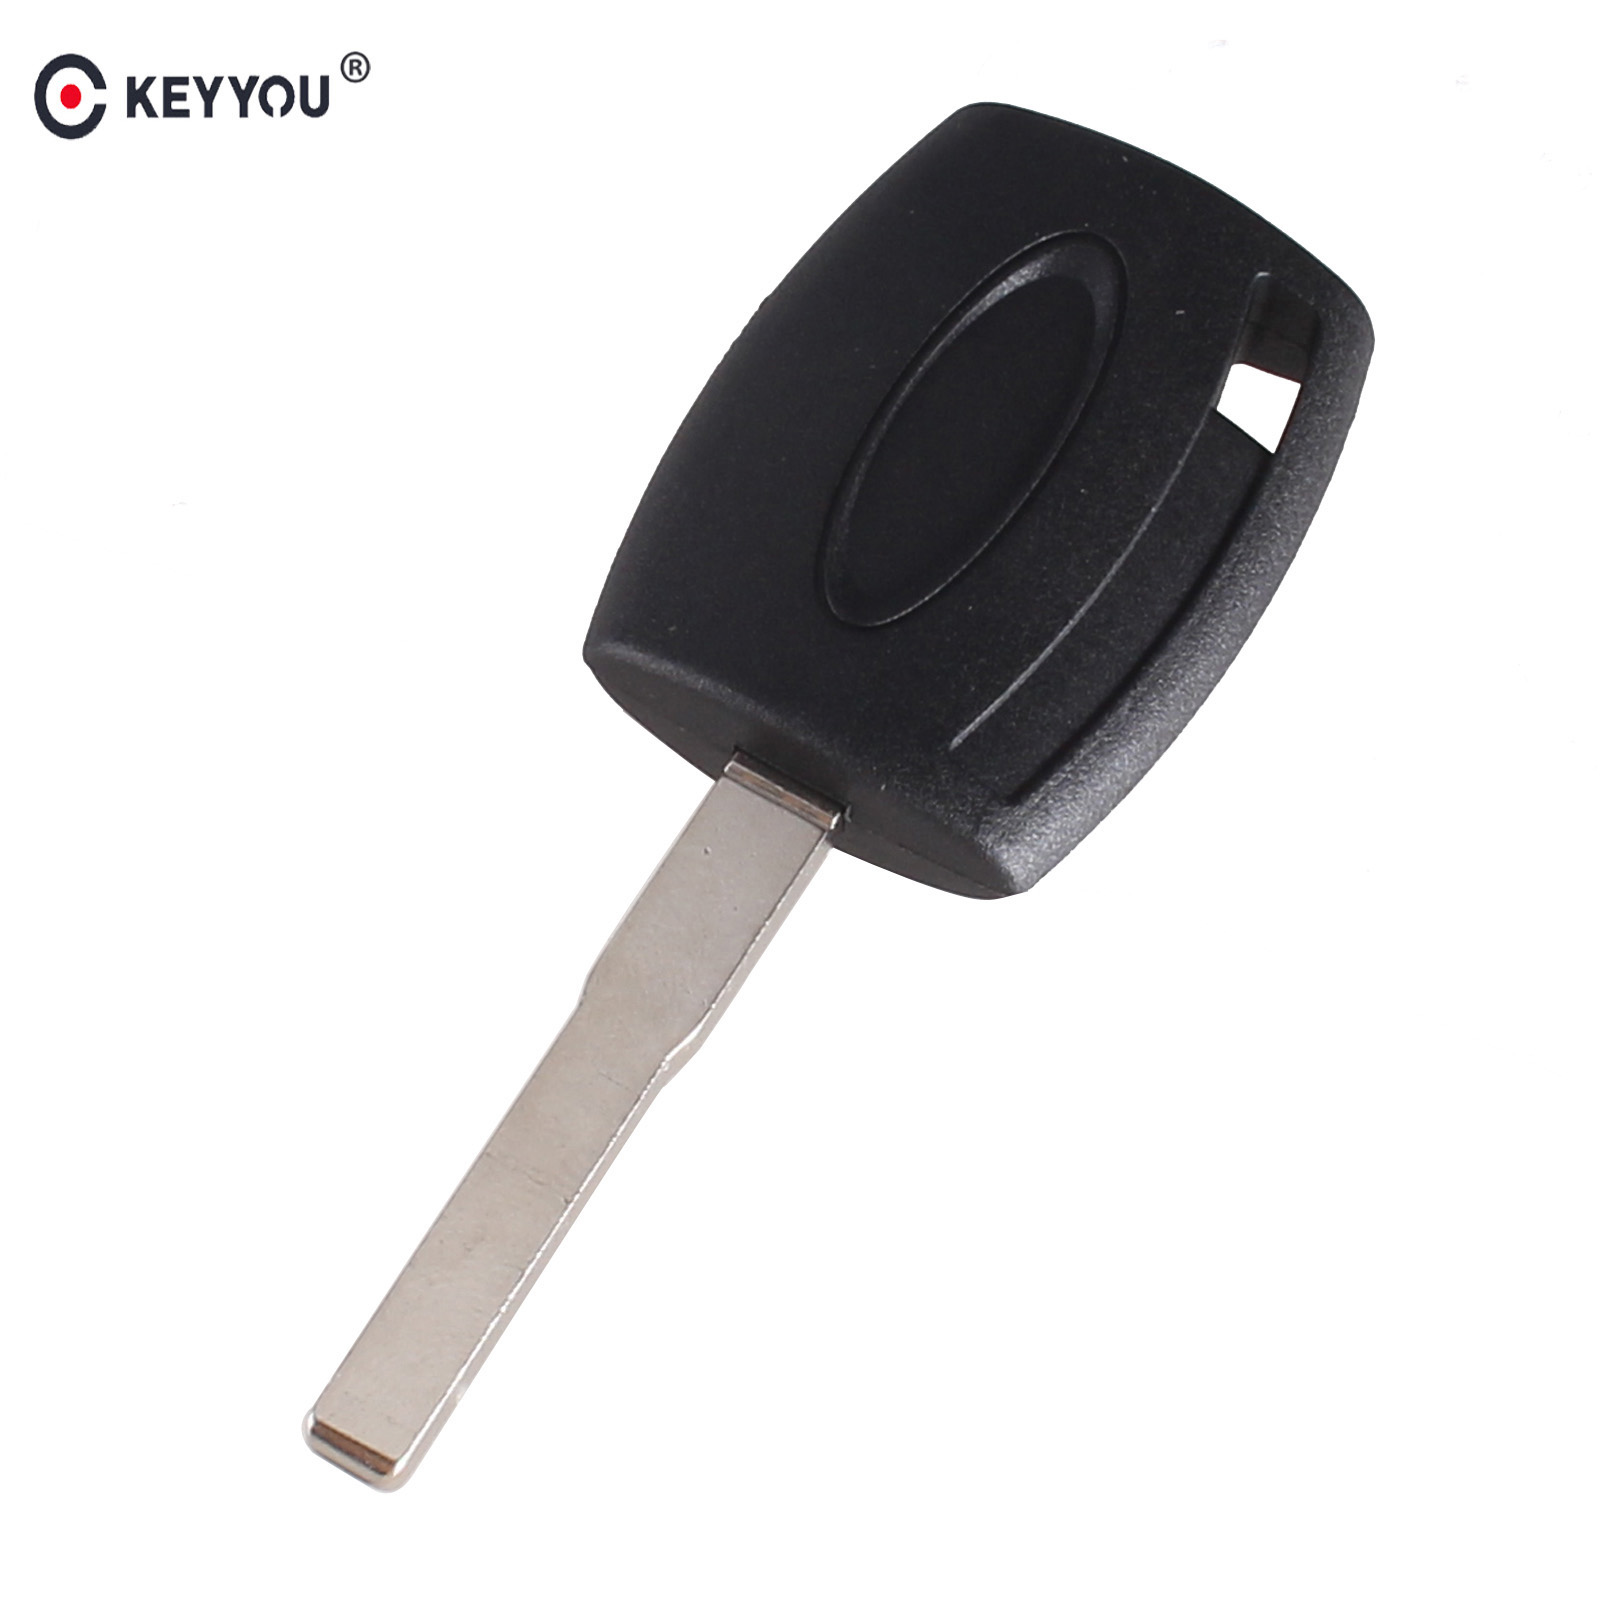 KEYYOU Transponder Key case shell for Ford Fiesta Mondeo Focus C-Max S-Max Galaxy Kuga HU101 Free shipping 2x 18 smd led license plate light module for ford focus da3 dyb fiesta ja8 mondeo mk4 c max s max kuga galaxy